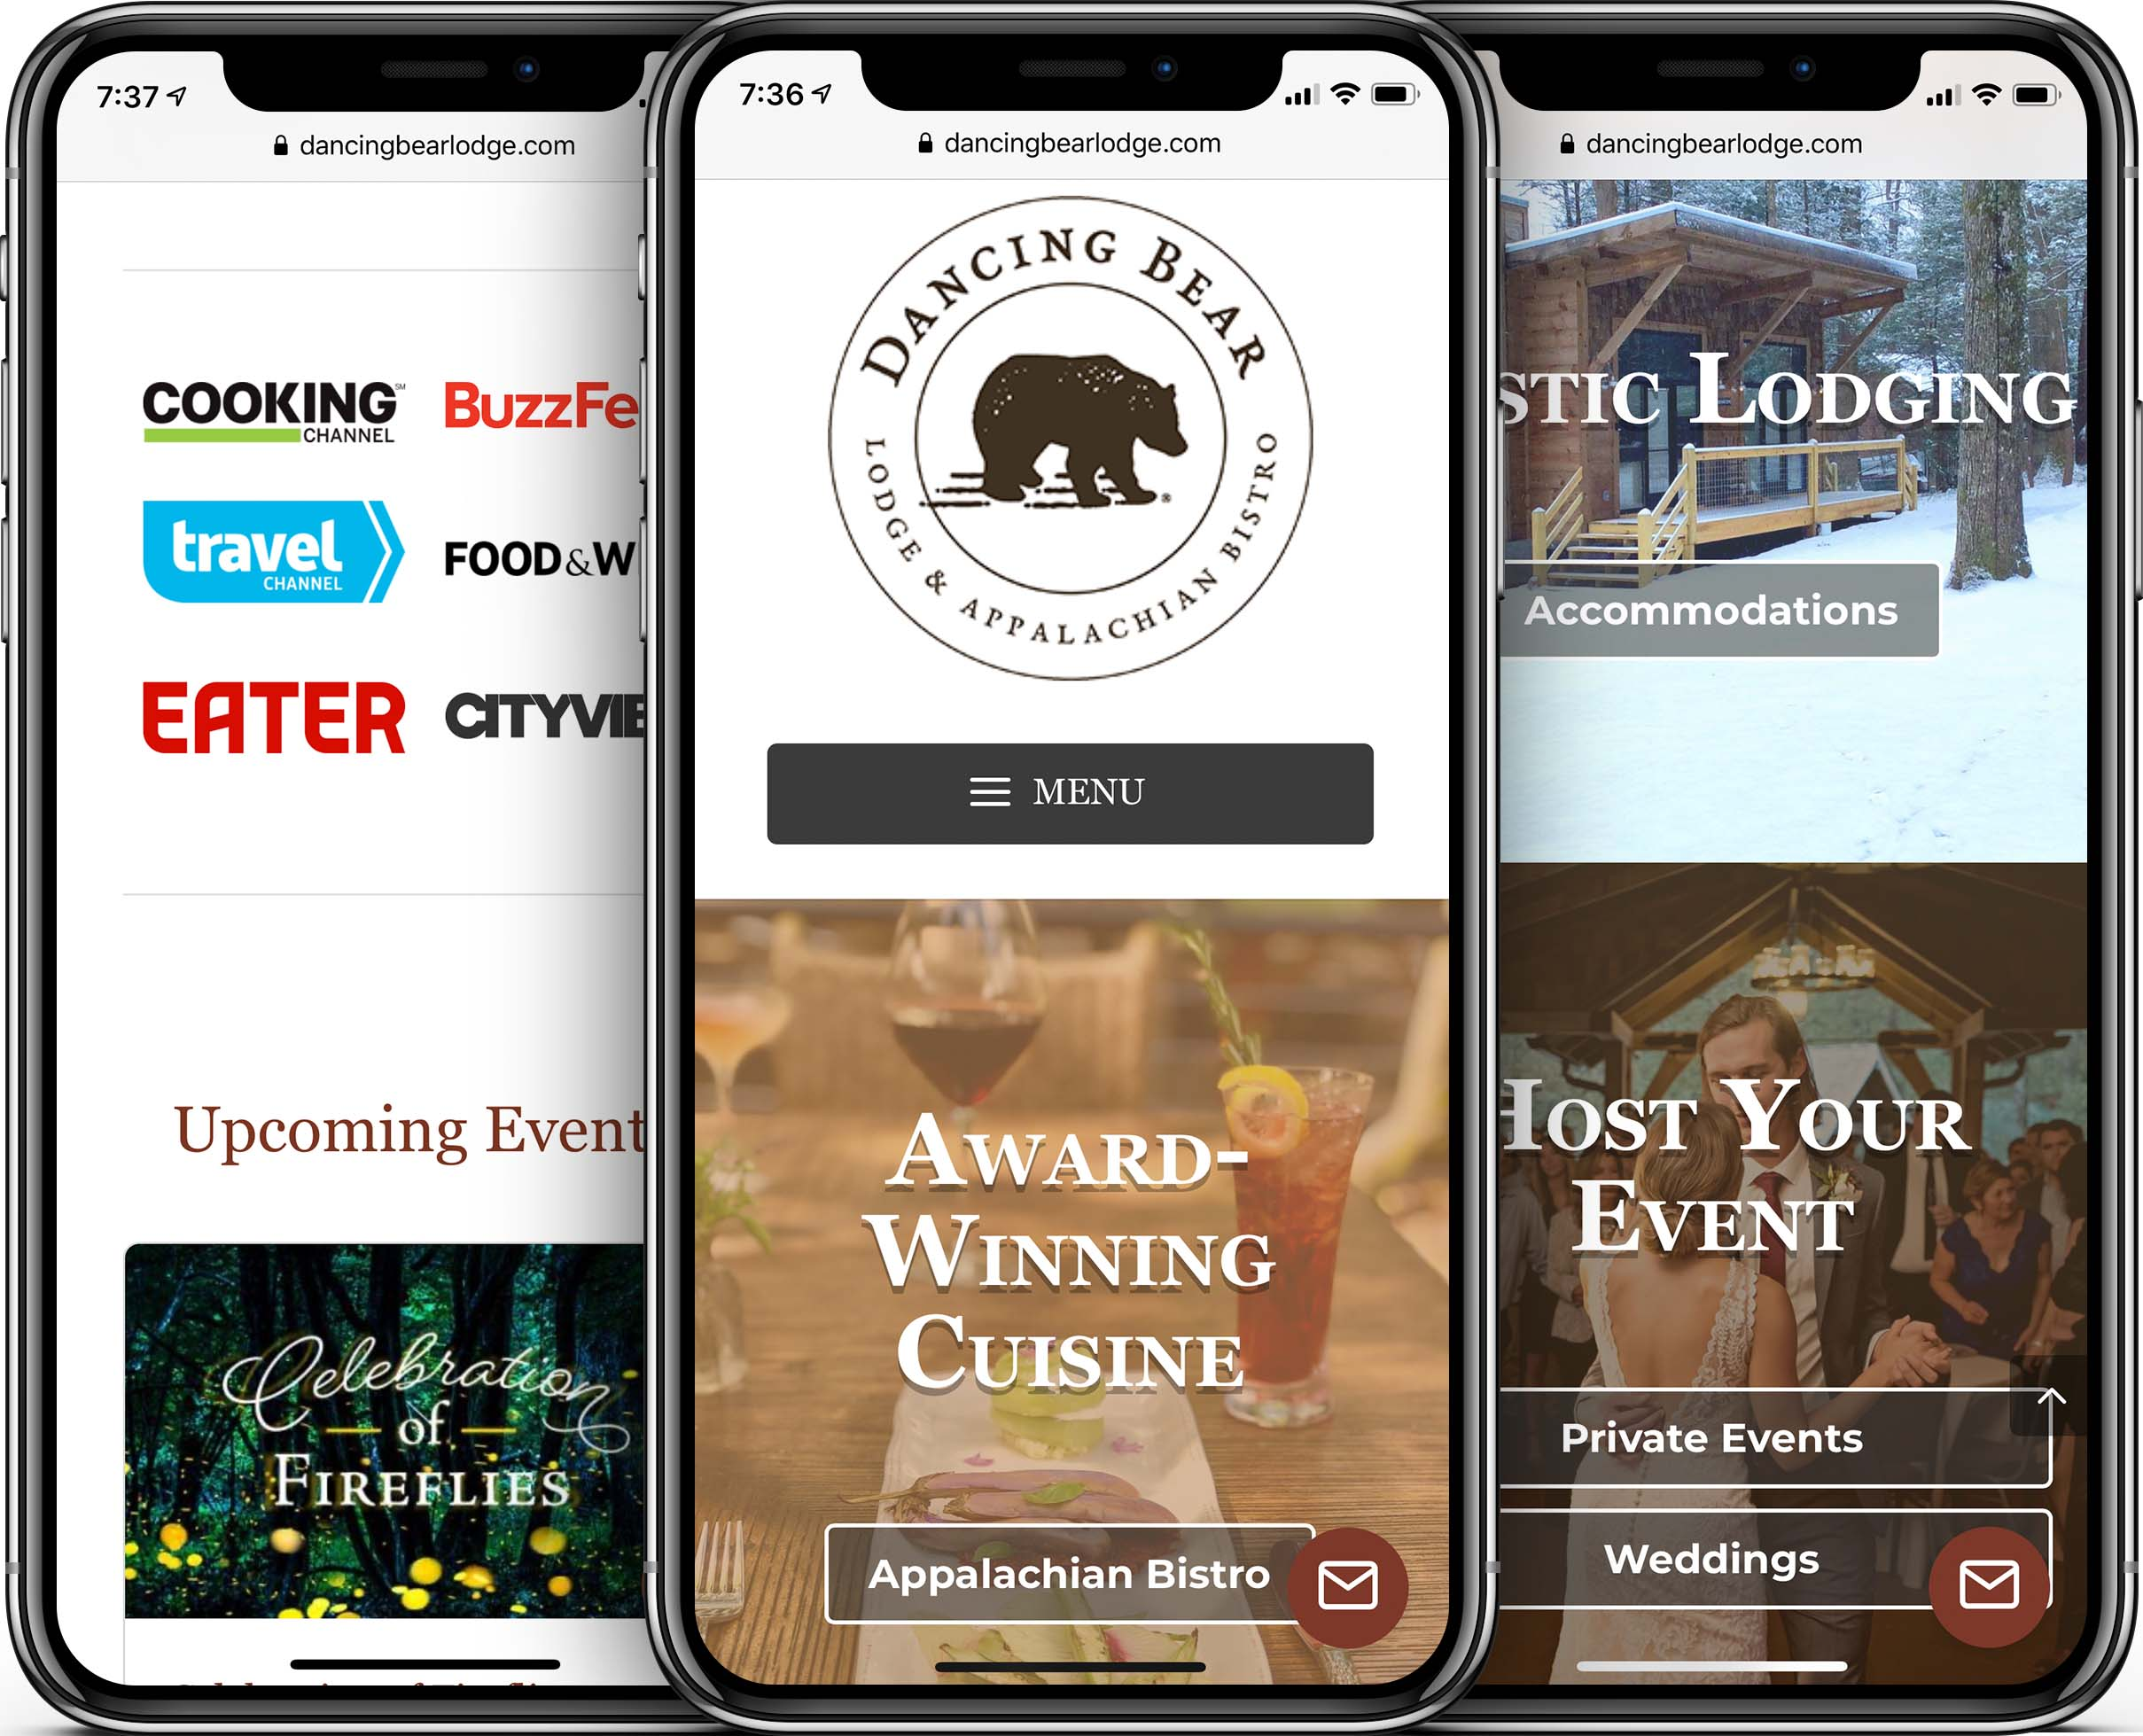 Dancing Bear Lodge Mobile-Friendly Web Design